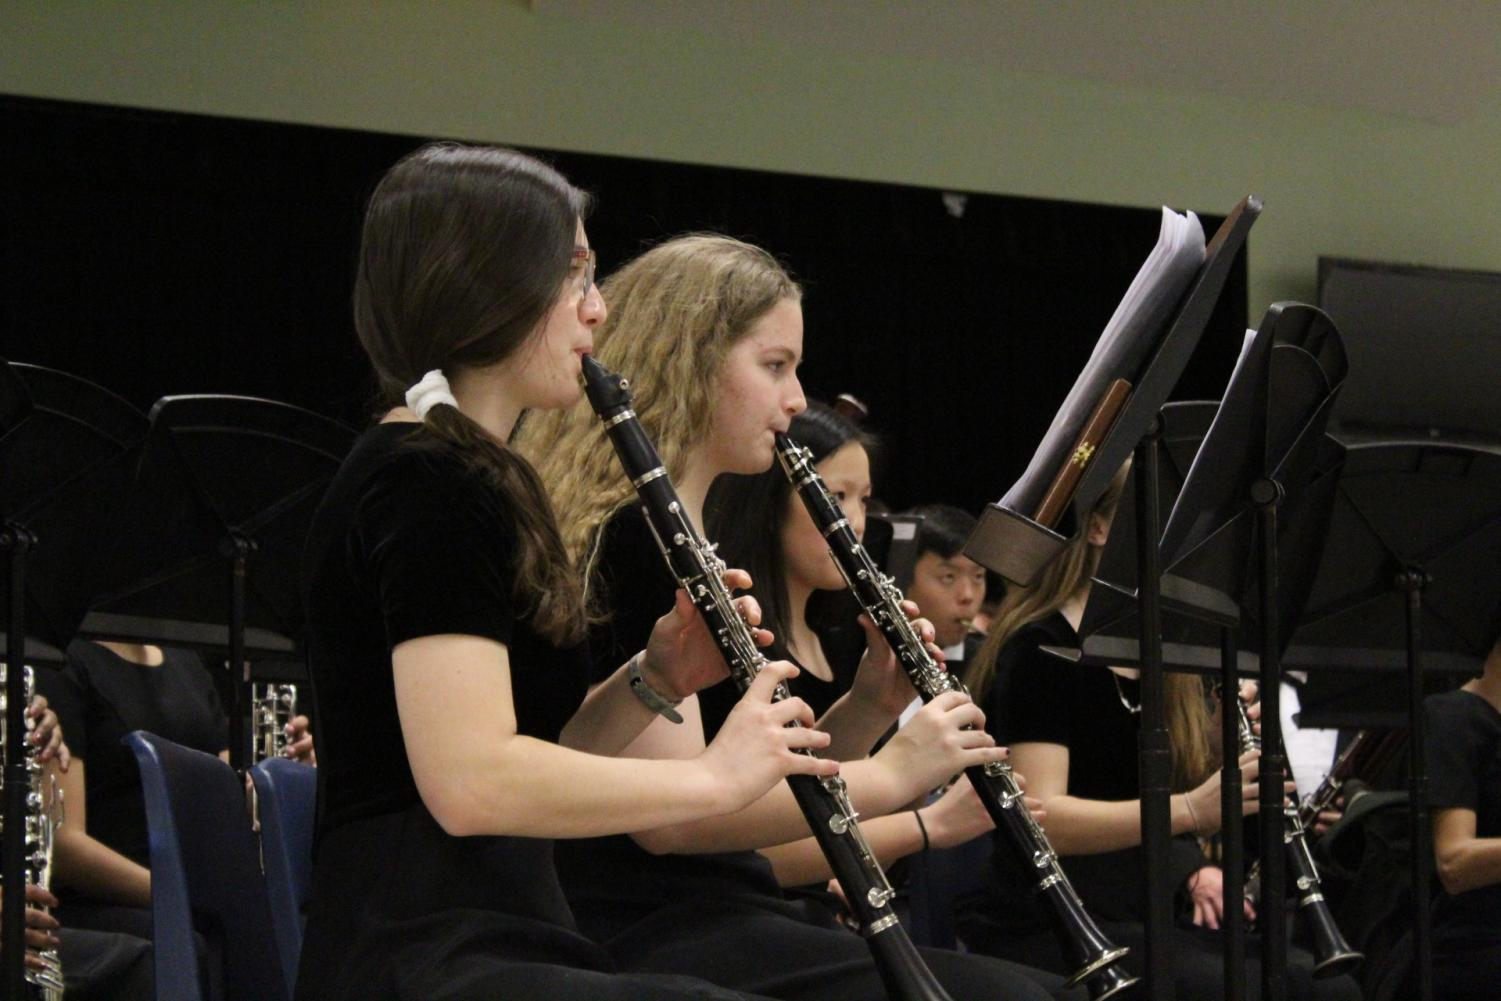 Danielle Efruss '18 and Sydney Thornburrow '20 play their clarinets in their most technical piece.